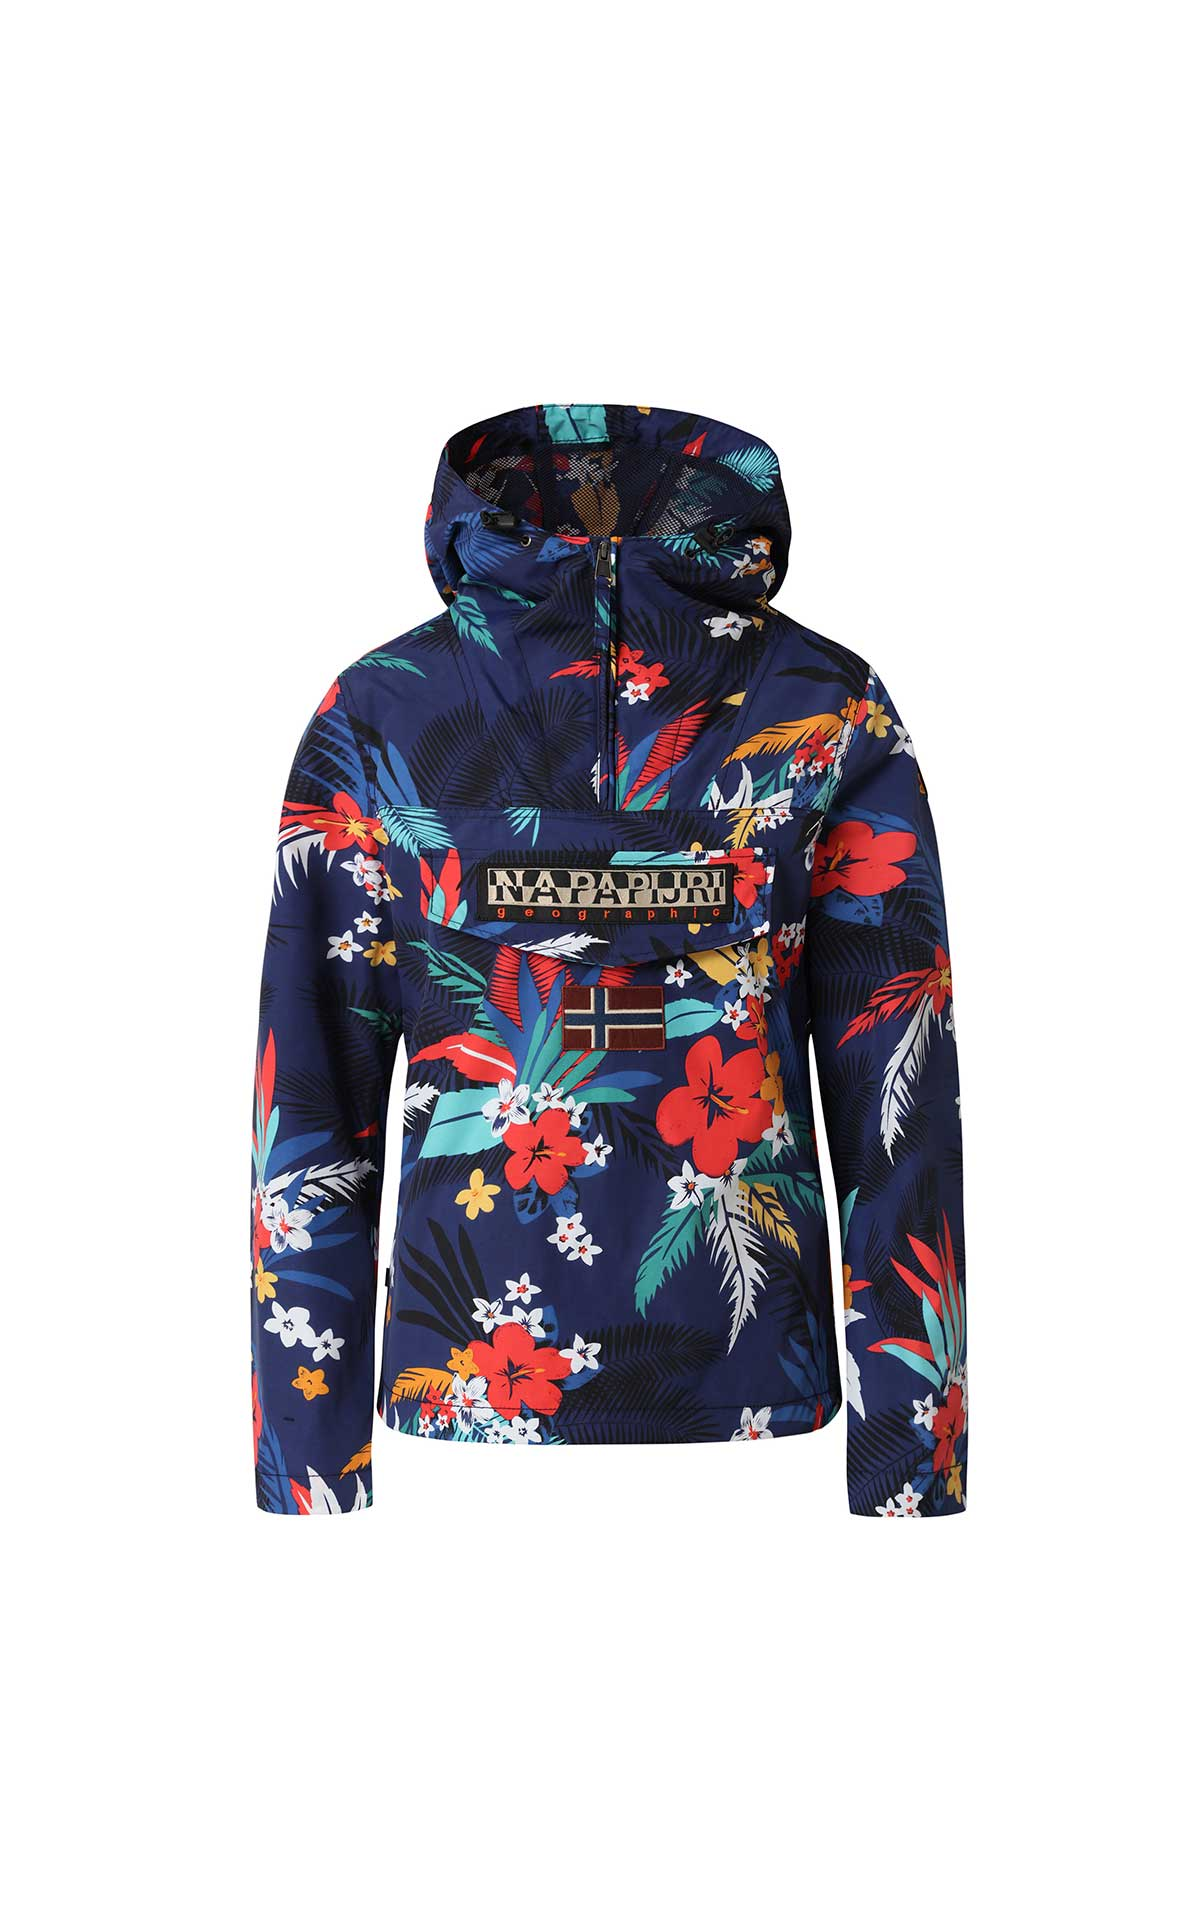 Flowered raincoat woman Napapijri